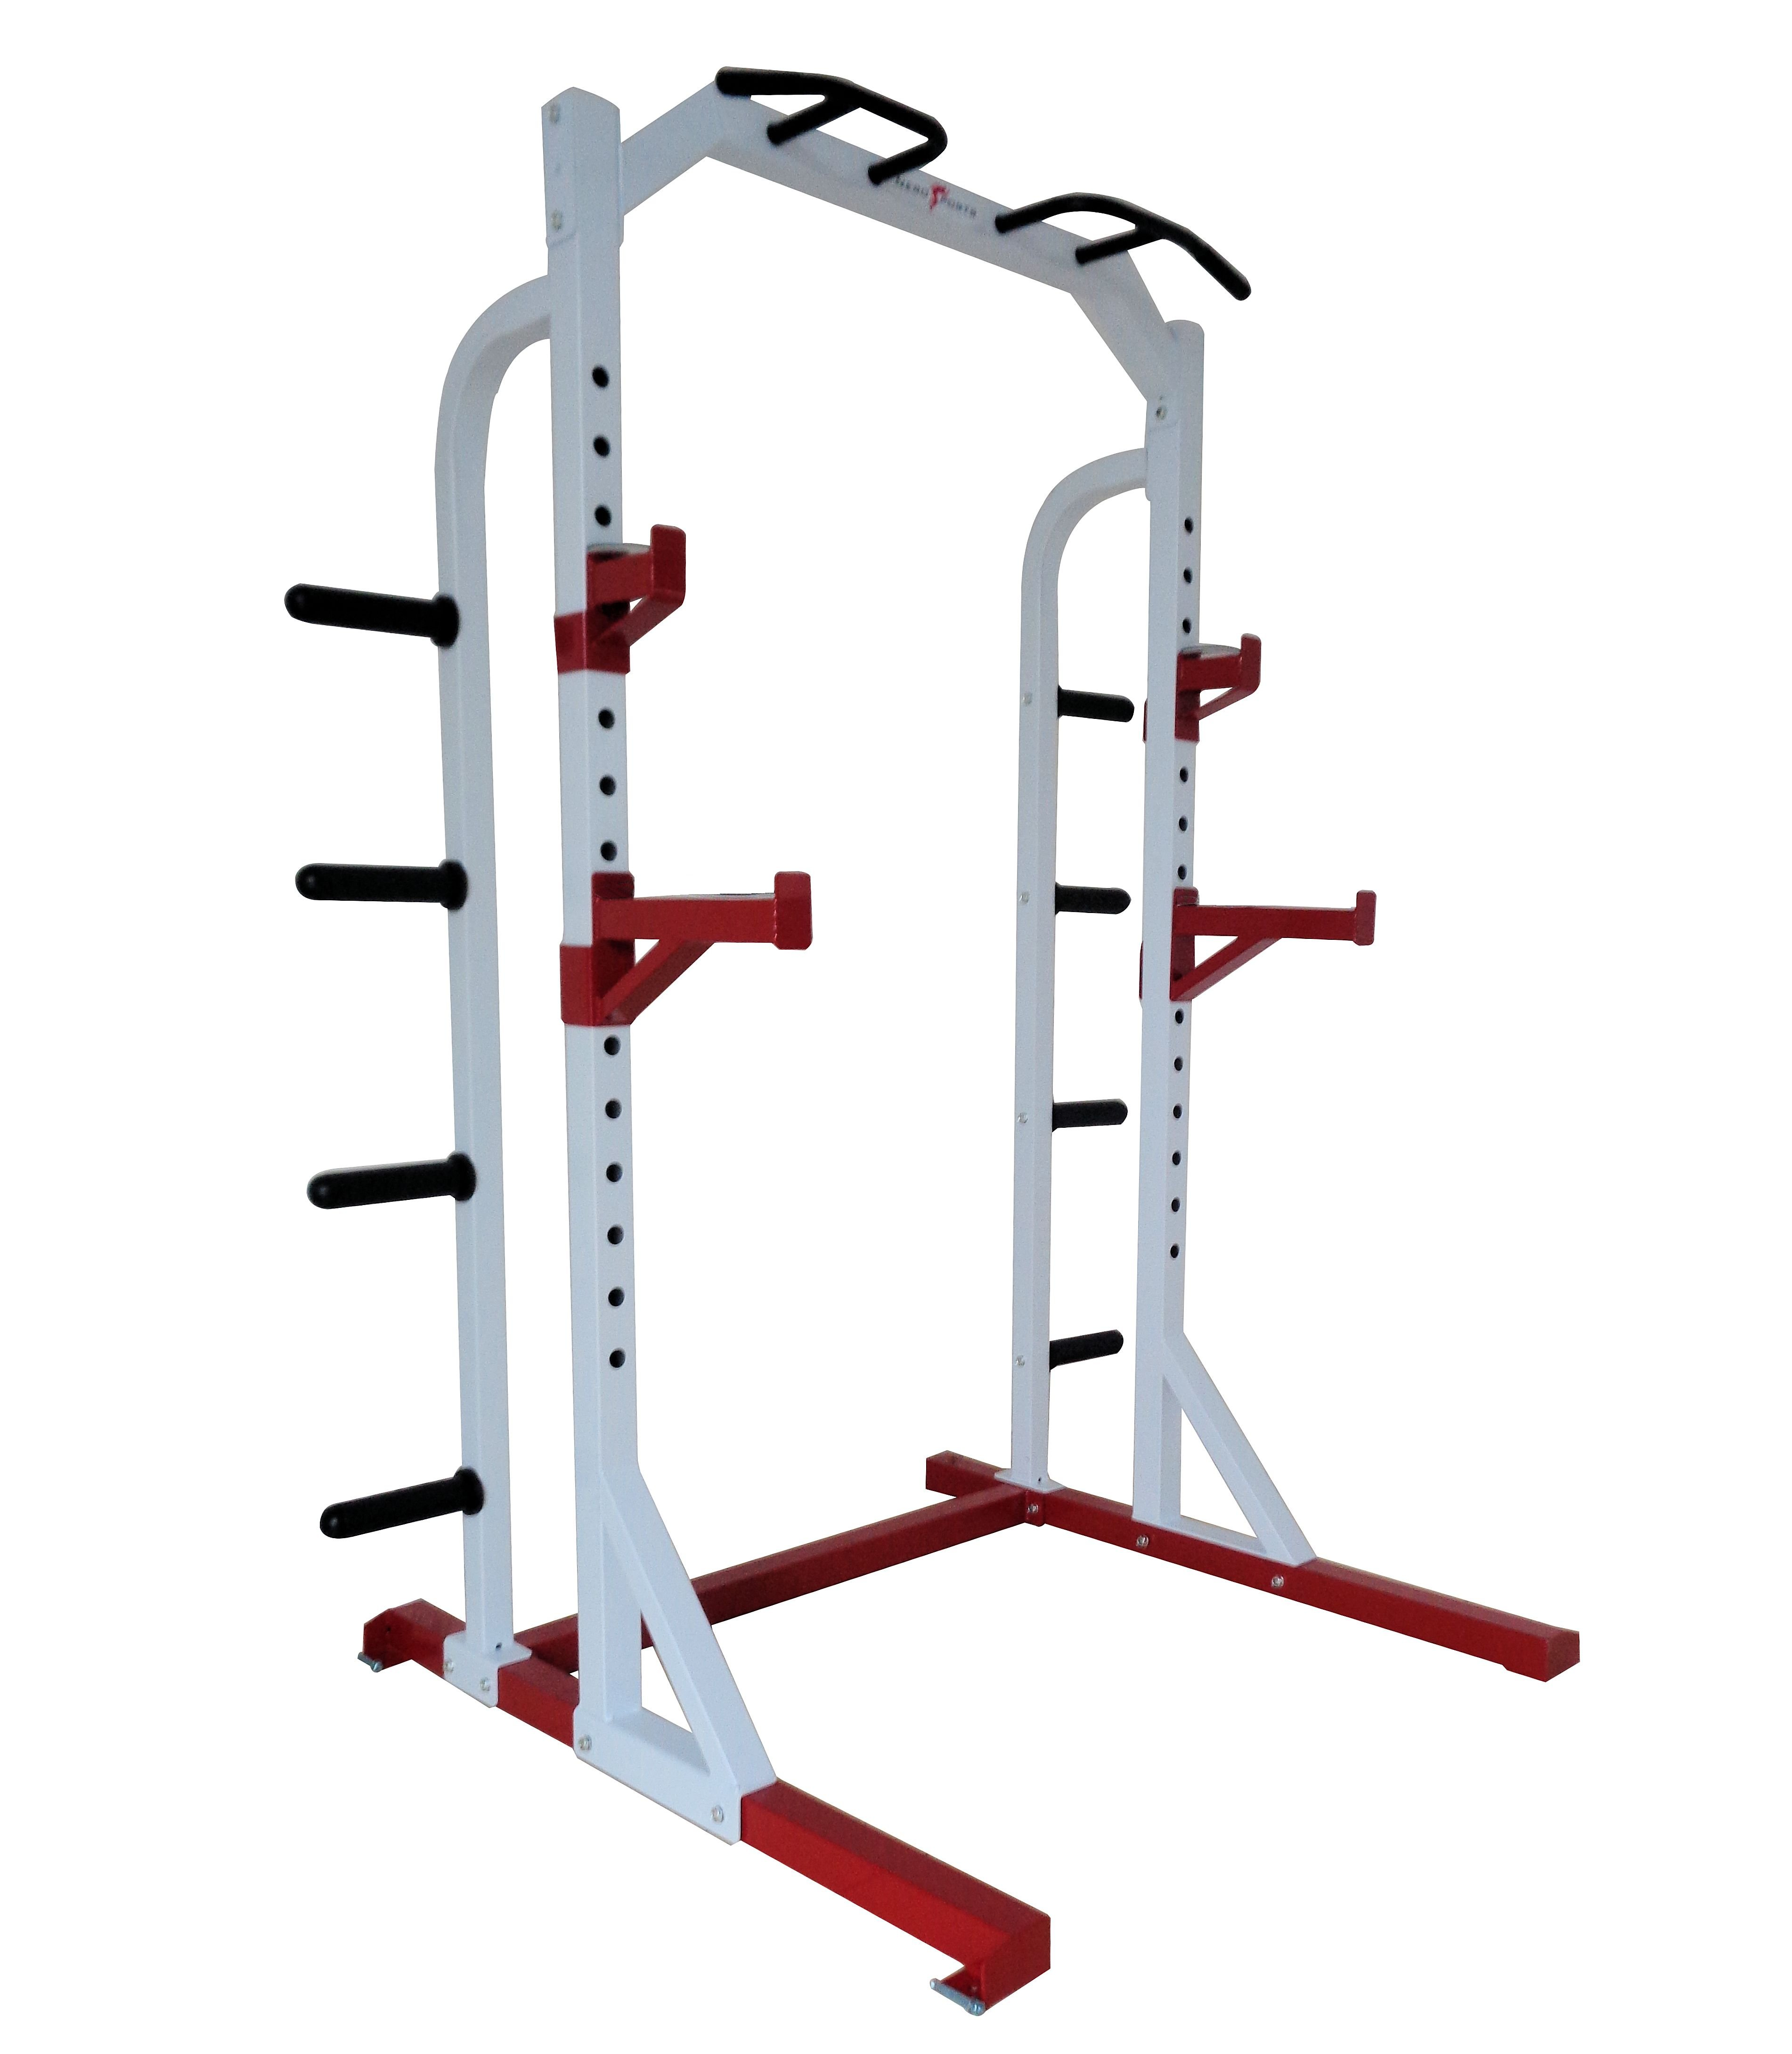 Nero Olympic Power Rack Squat Stand Weight Cage Multi Gym Pull Up Bar Heavy Duty Ebay